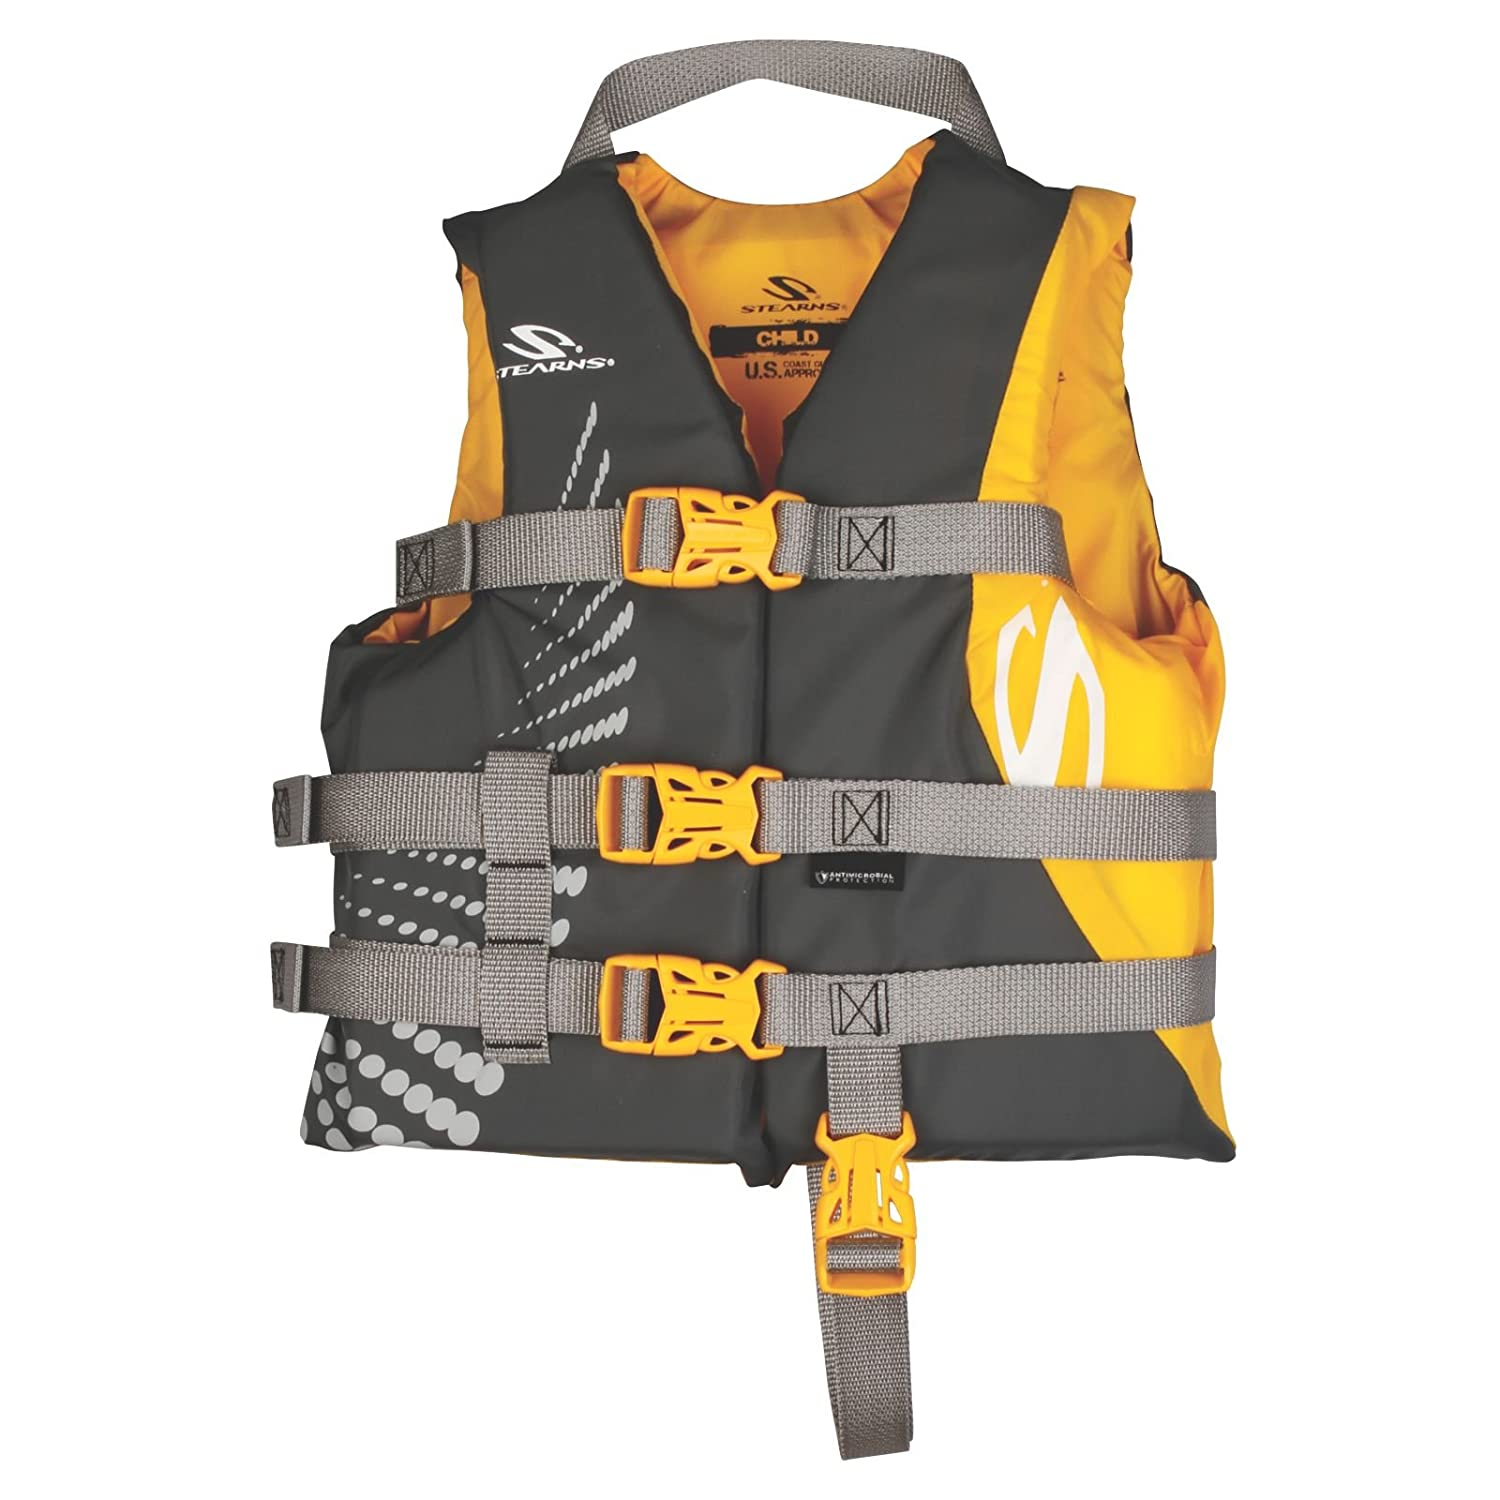 Stearns Youth Antimicrobial Nylon Life Jacket Stearns Antimicrobial Nylon Child Vest Coleman 2000013961